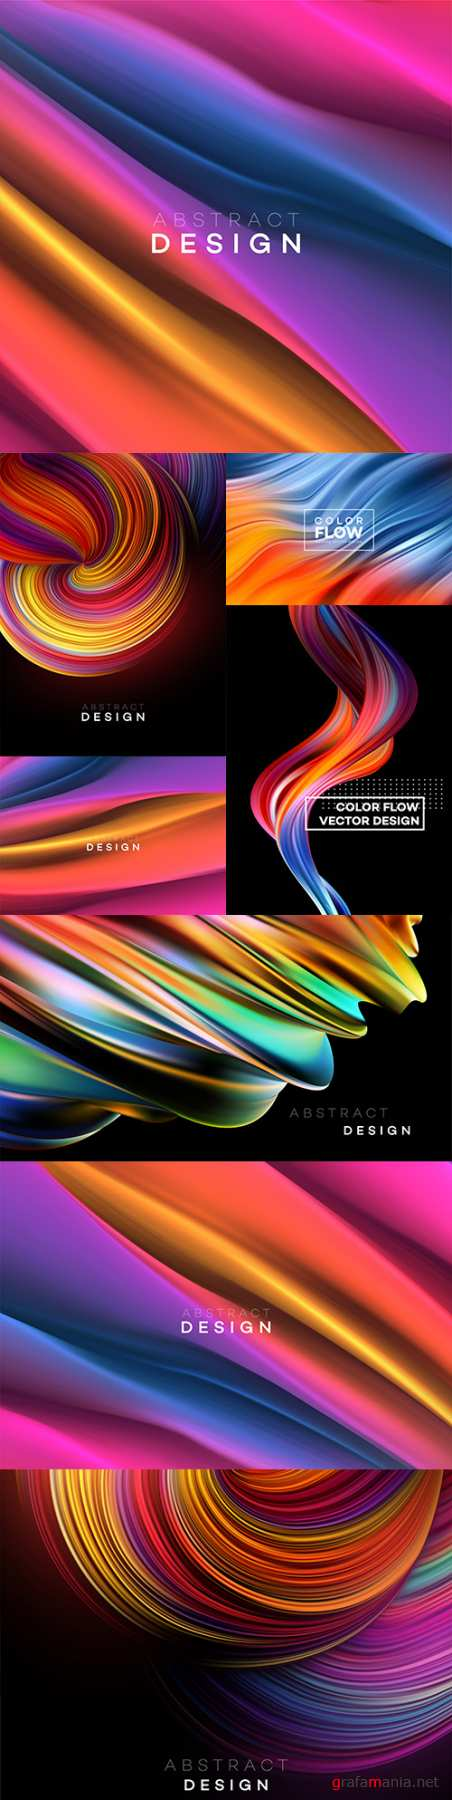 Modern design color flow form abstract background